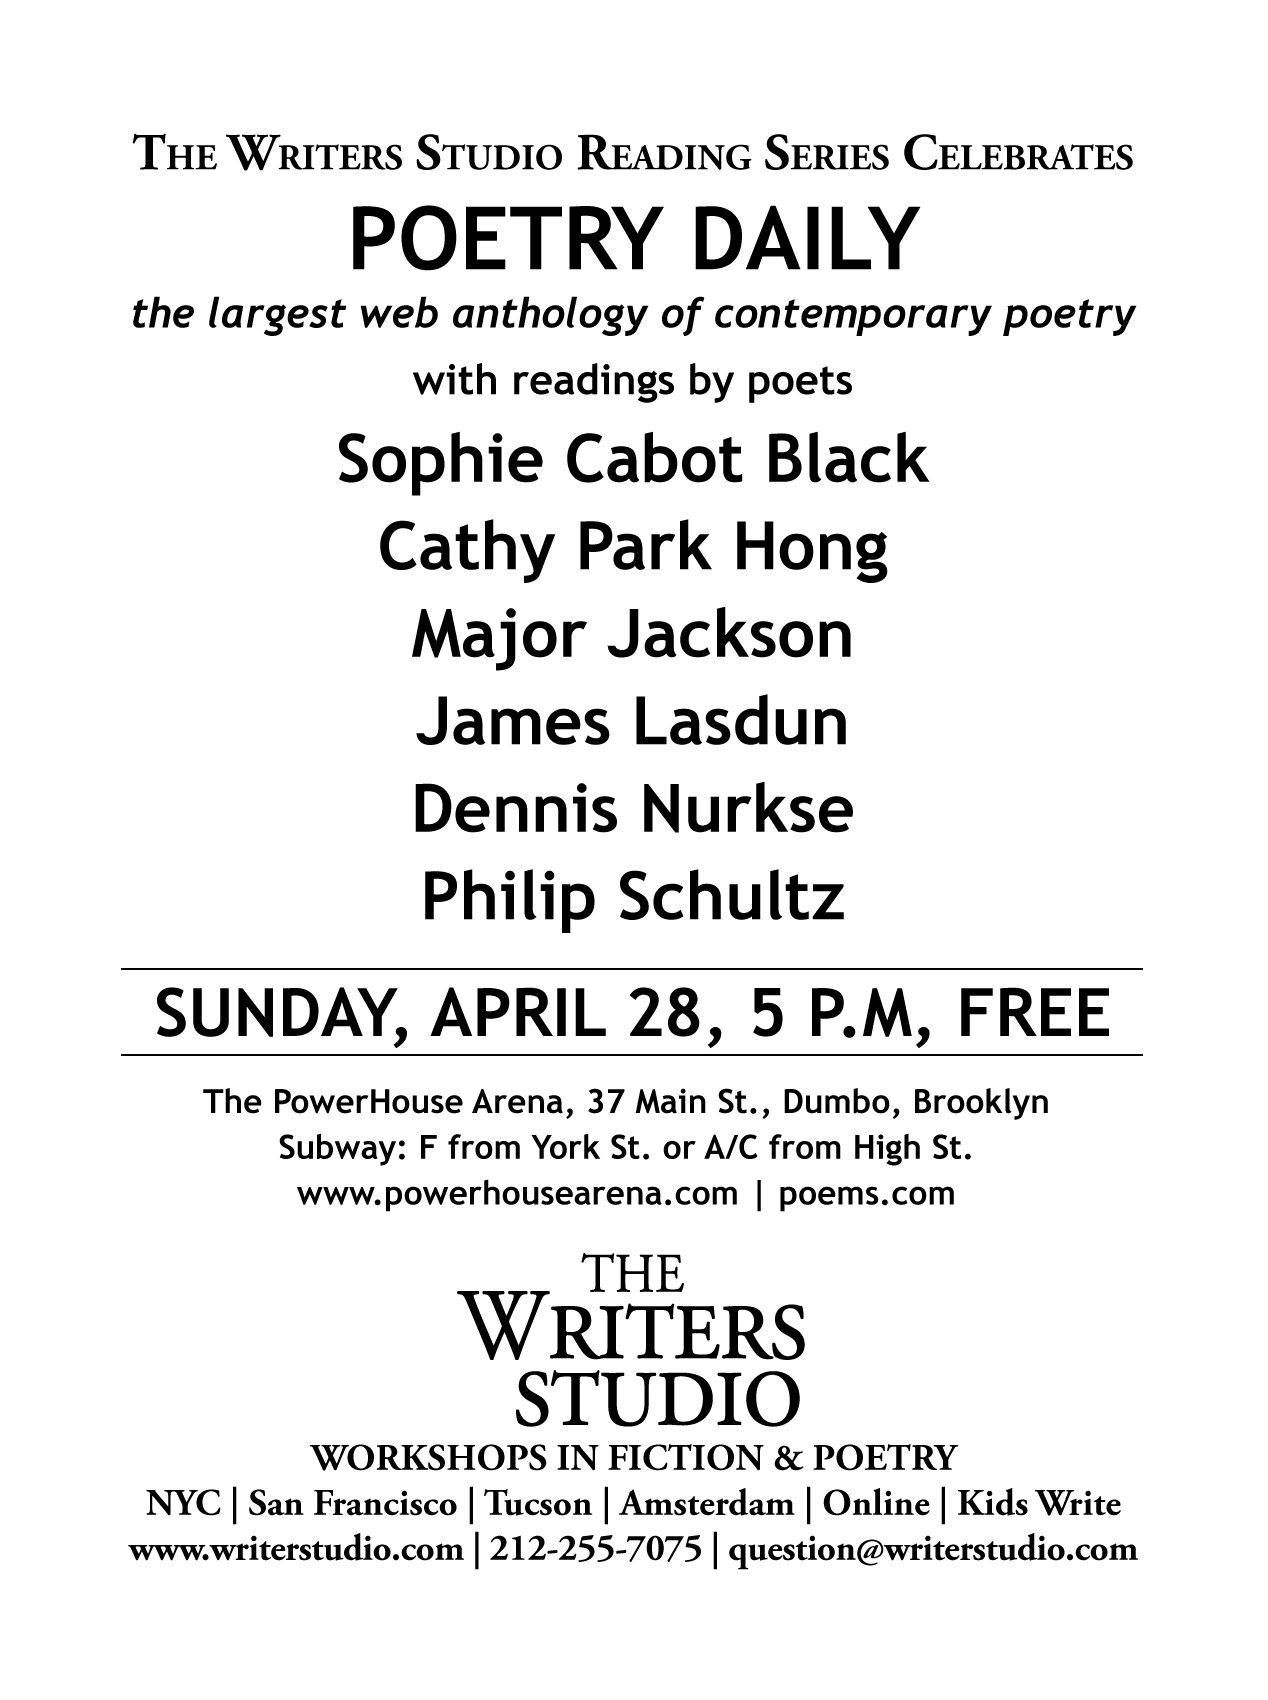 The Writers Studio Reading Series Celebrates: Poetry Daily